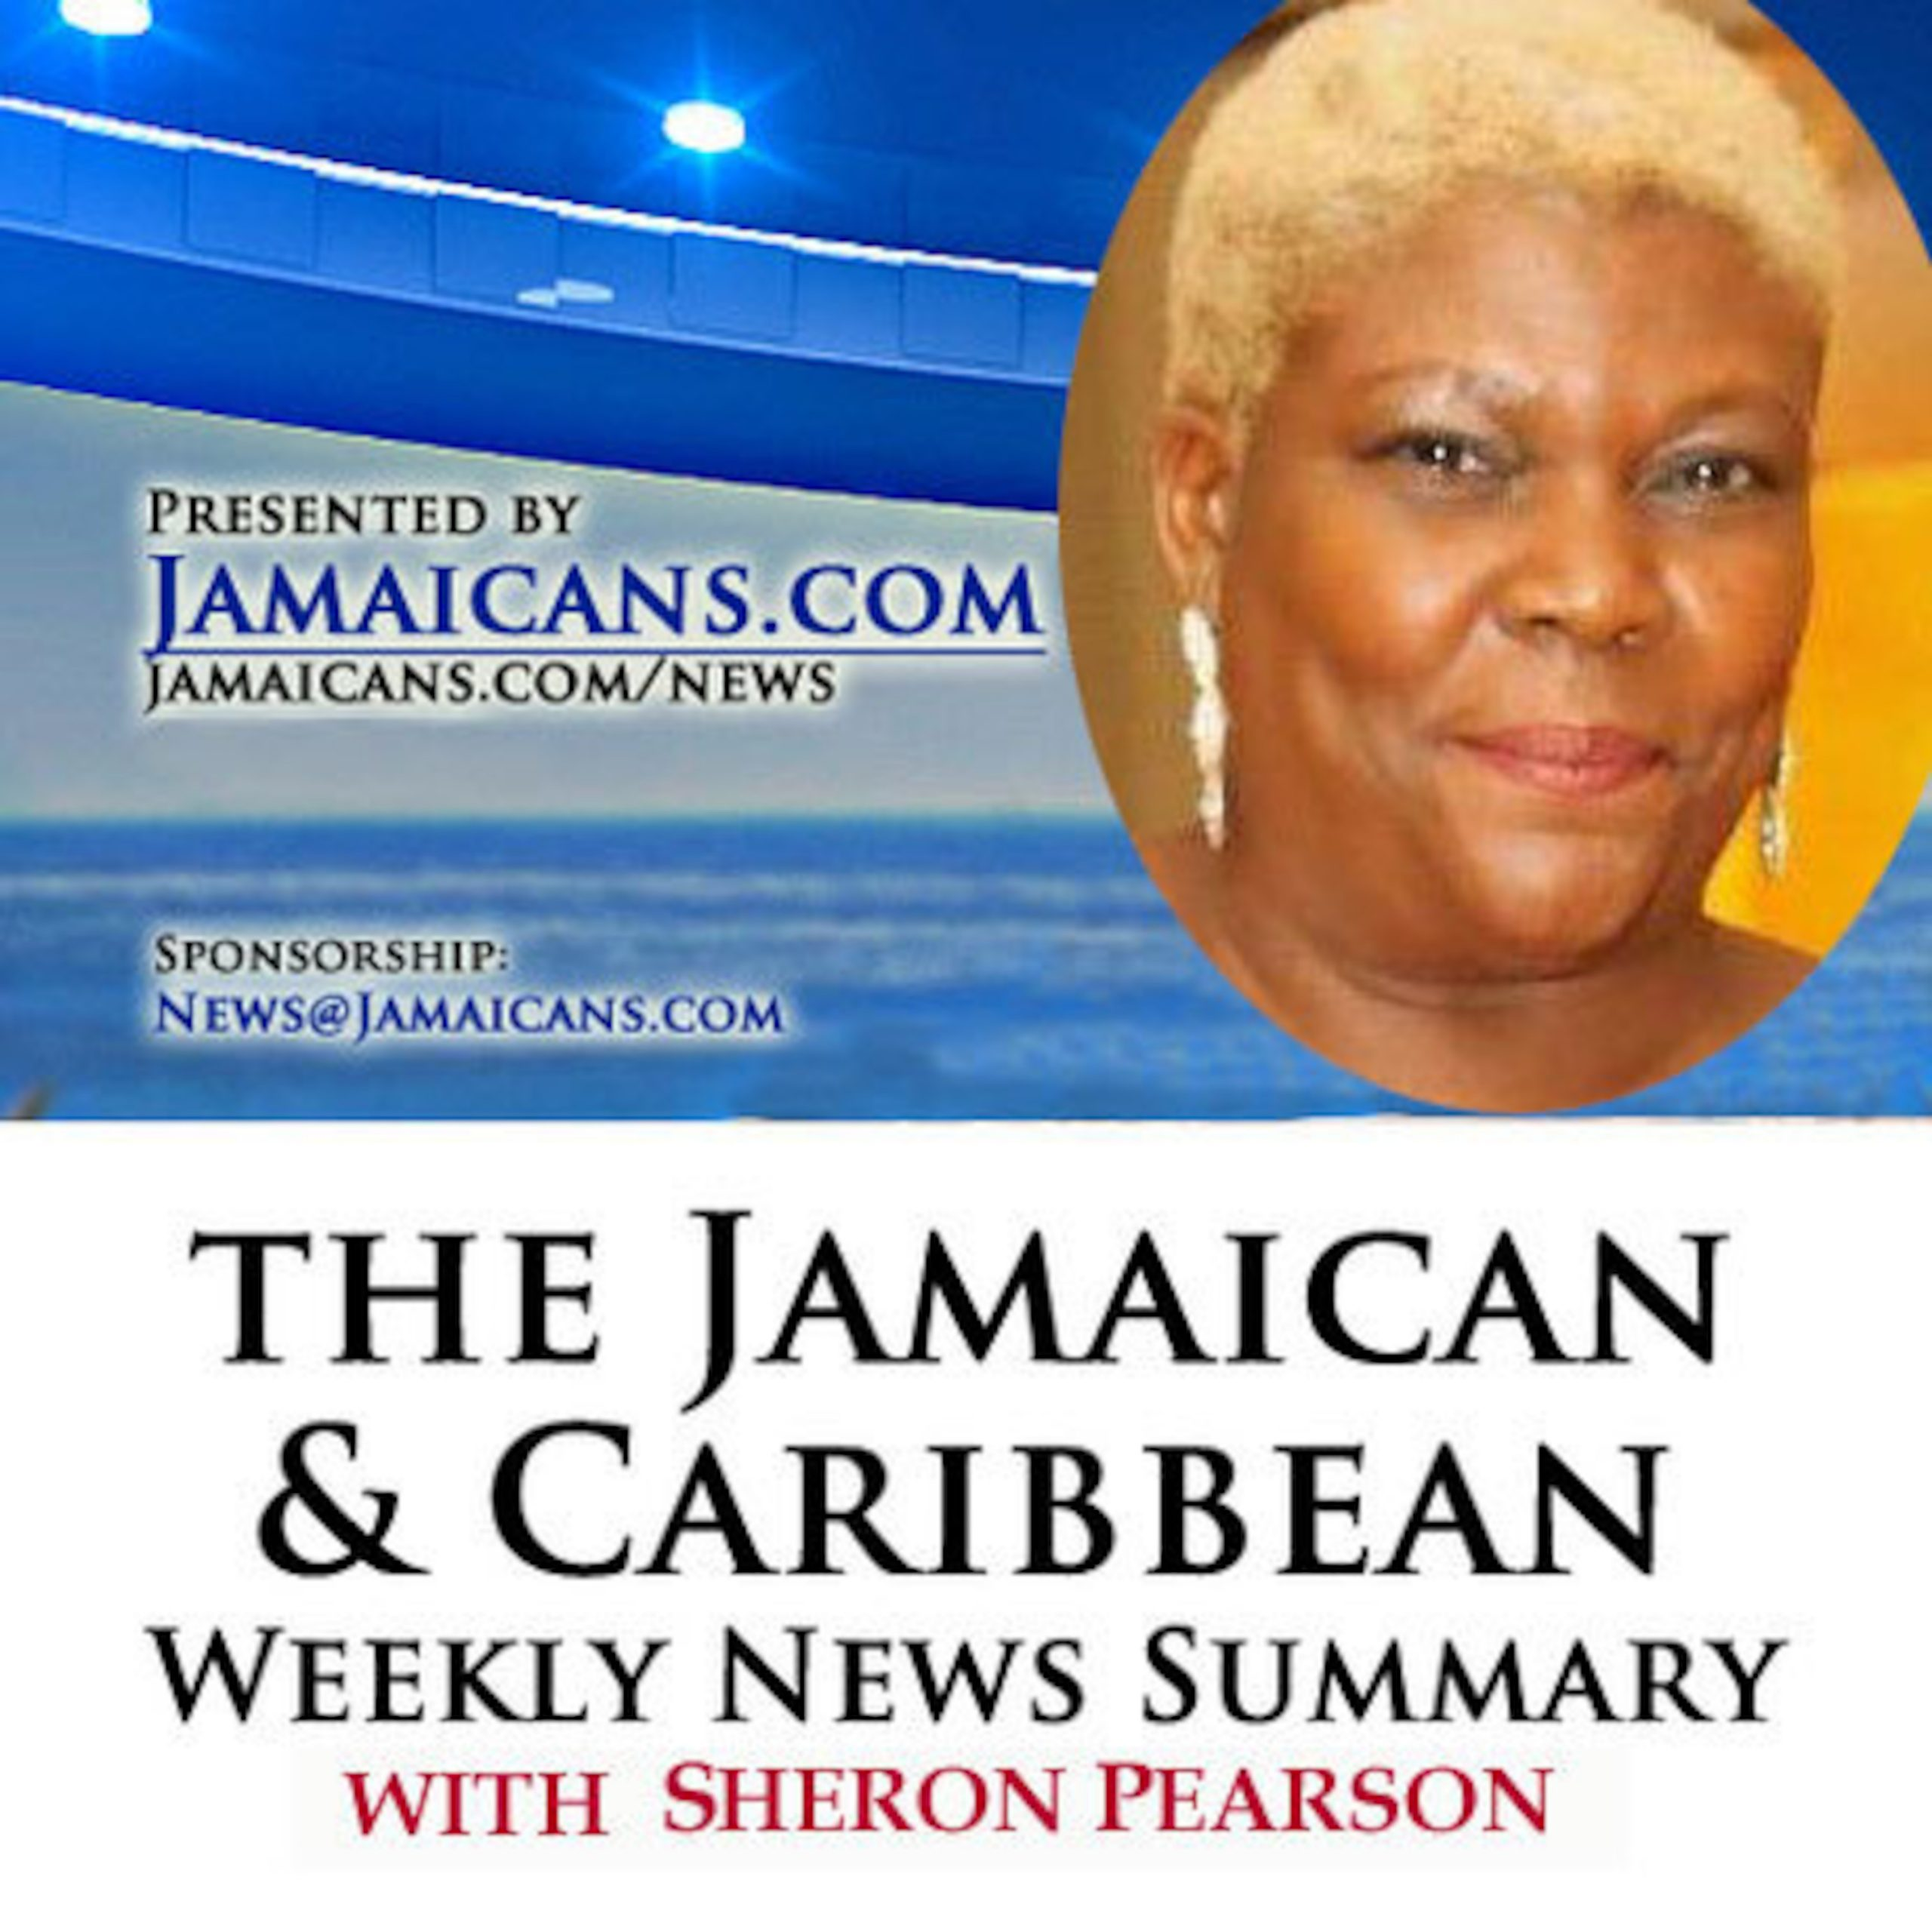 Listen to the Podcast of The Jamaica & Caribbean Weekly News Summary for the week ending January 10 2020